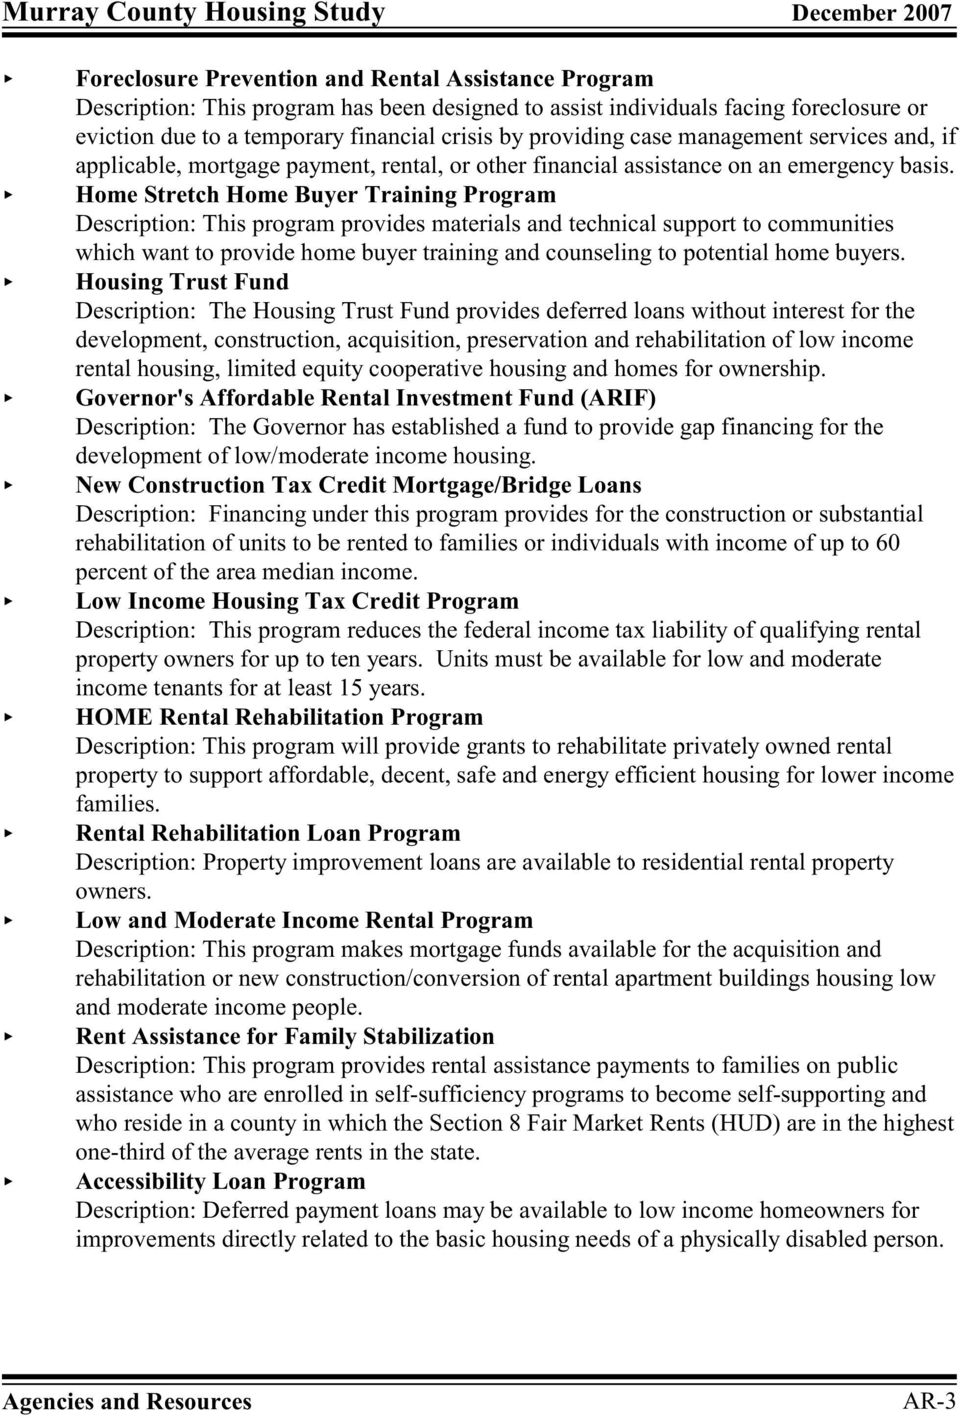 Home Stretch Home Buyer Training Program Description: This program provides materials and technical support to communities which want to provide home buyer training and counseling to potential home